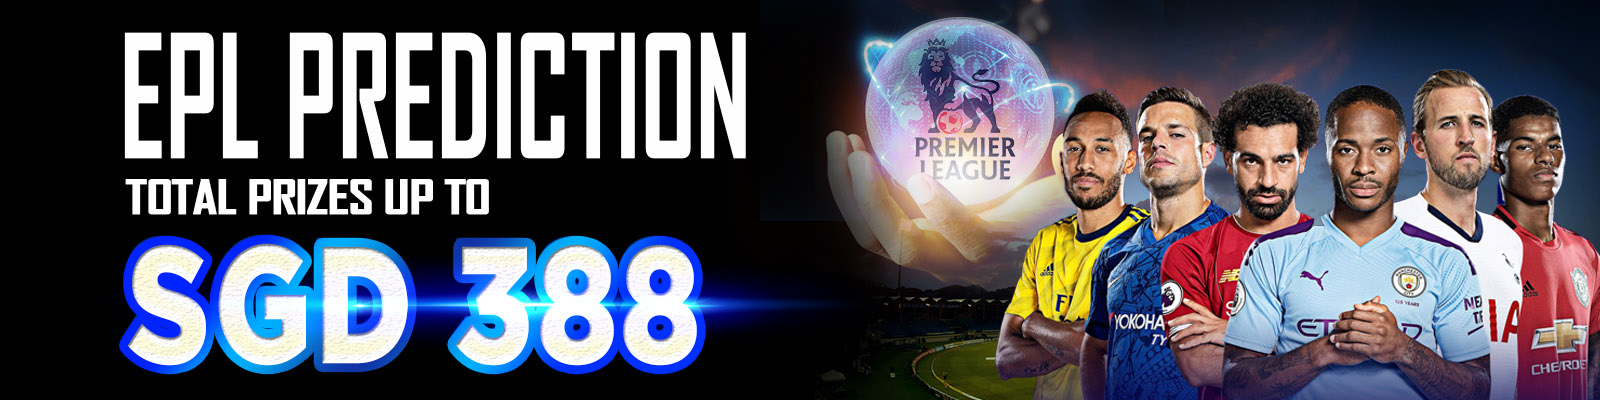 EPL Prediction Win Total Prizes Up To SGD 388